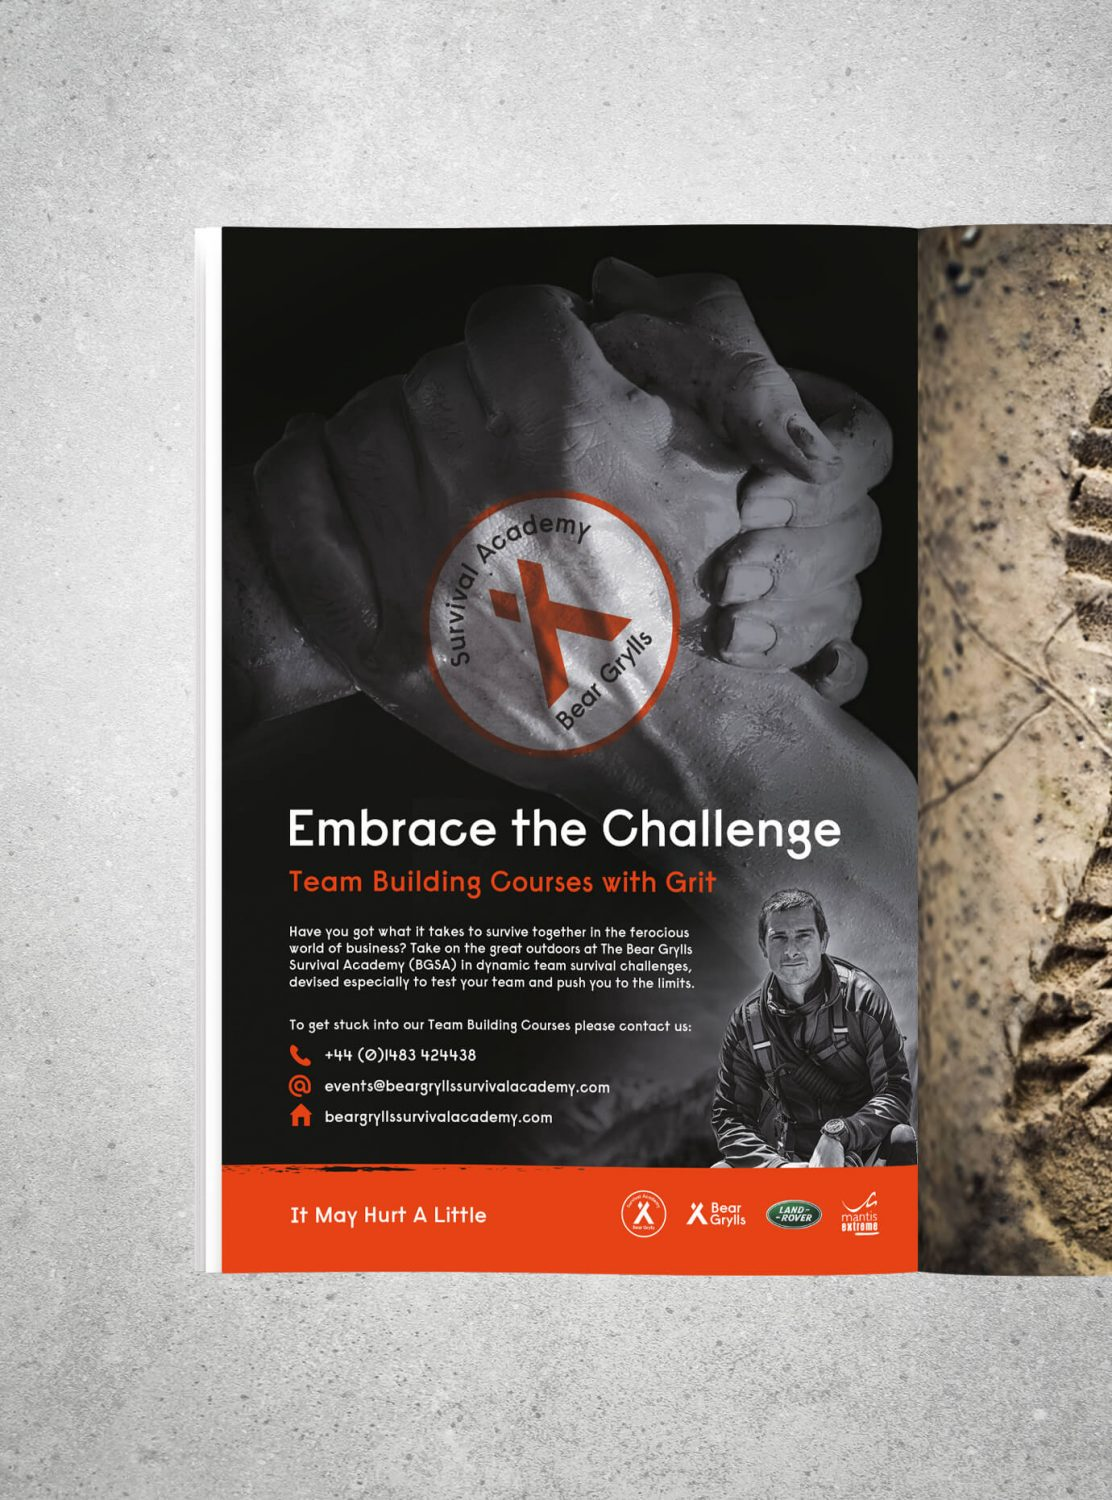 Bear Grylls Embrace the challenge poster case study